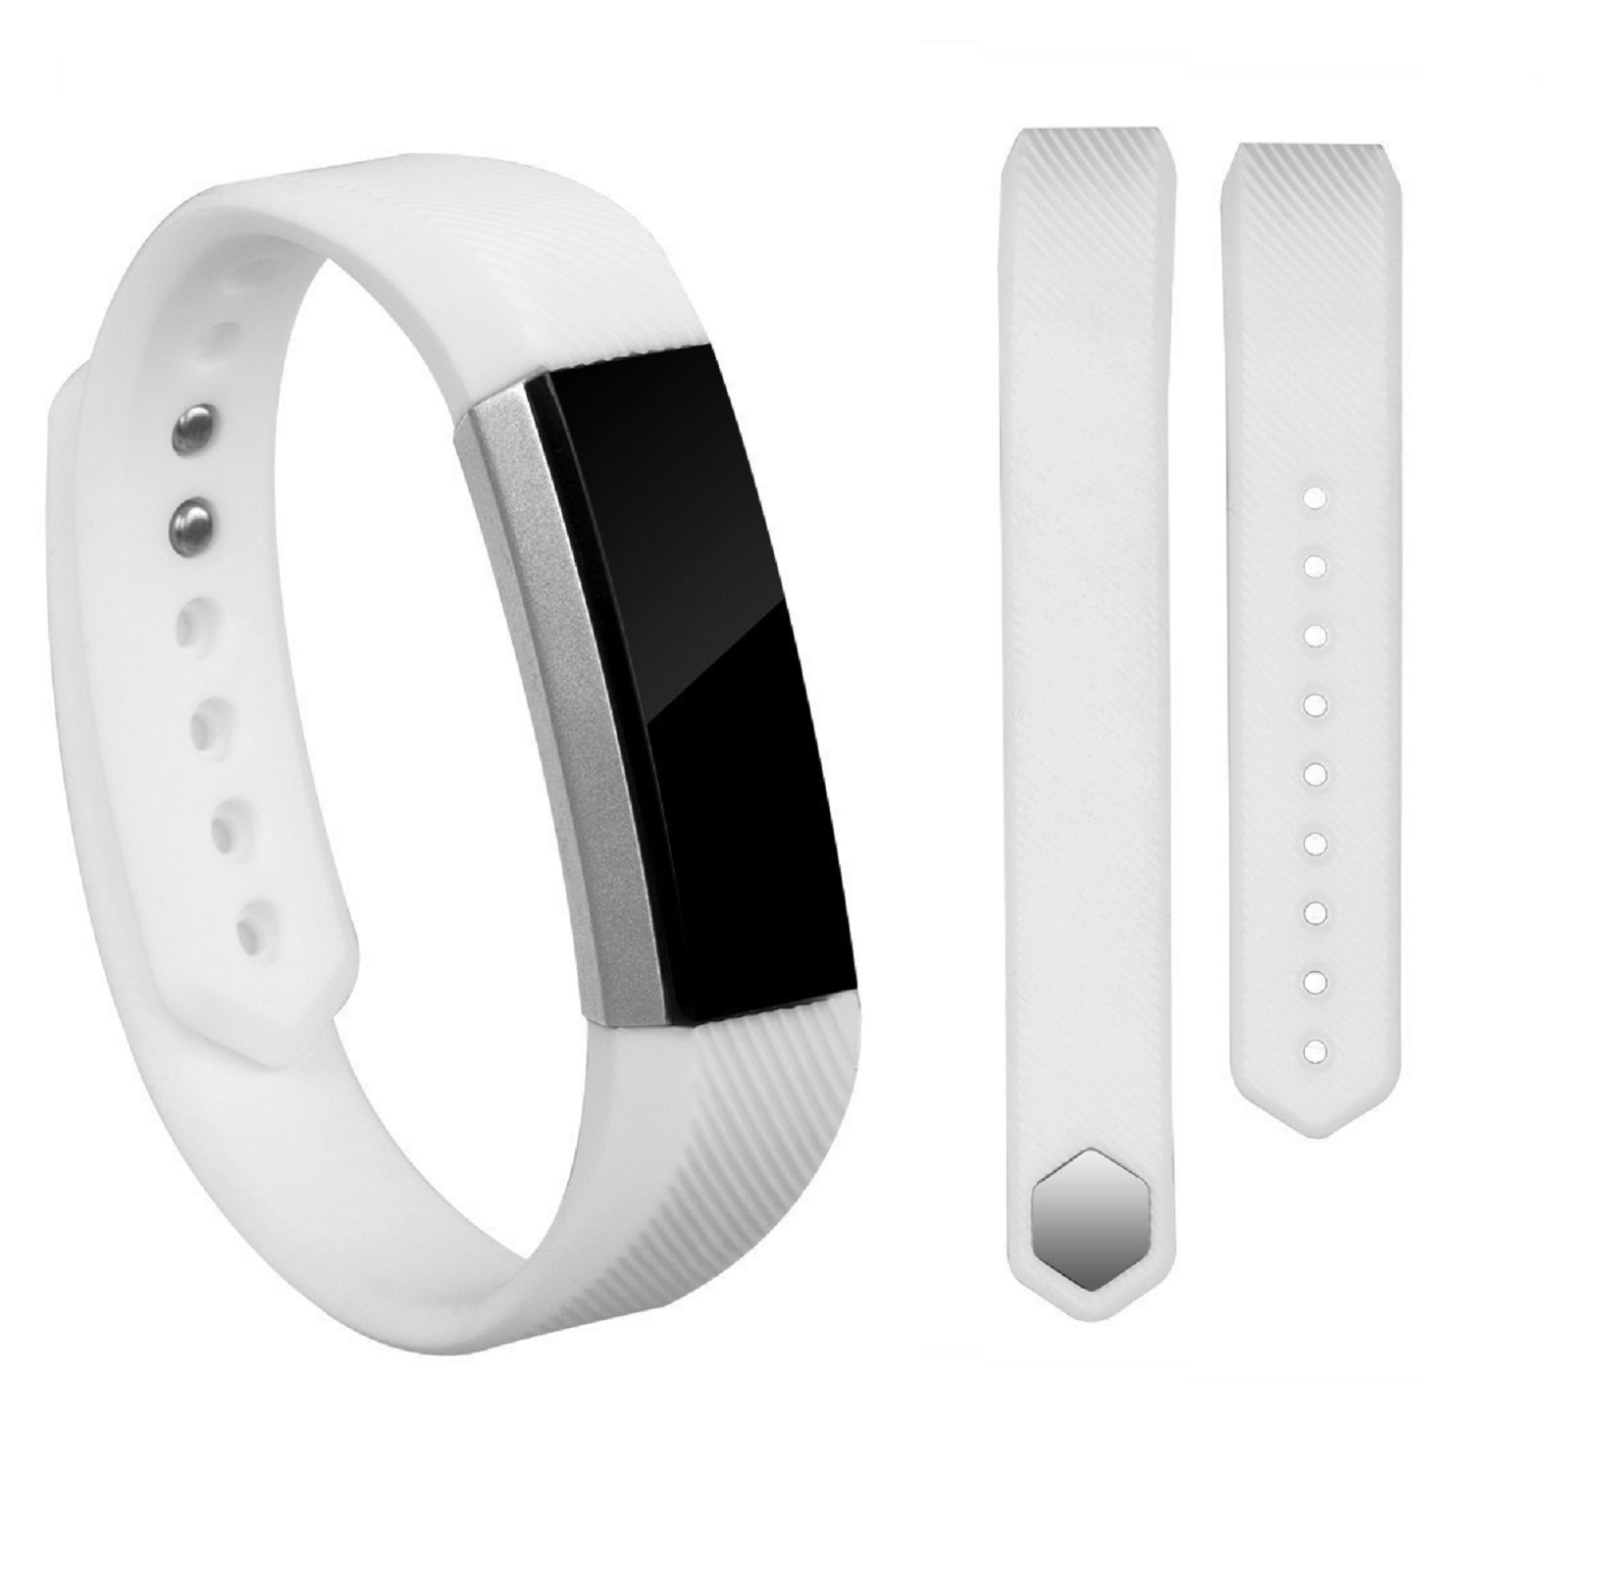 Replacement OEM Silicone Wrist Band Strap For Fitbit Alta / Fitbit Alta HR New 12